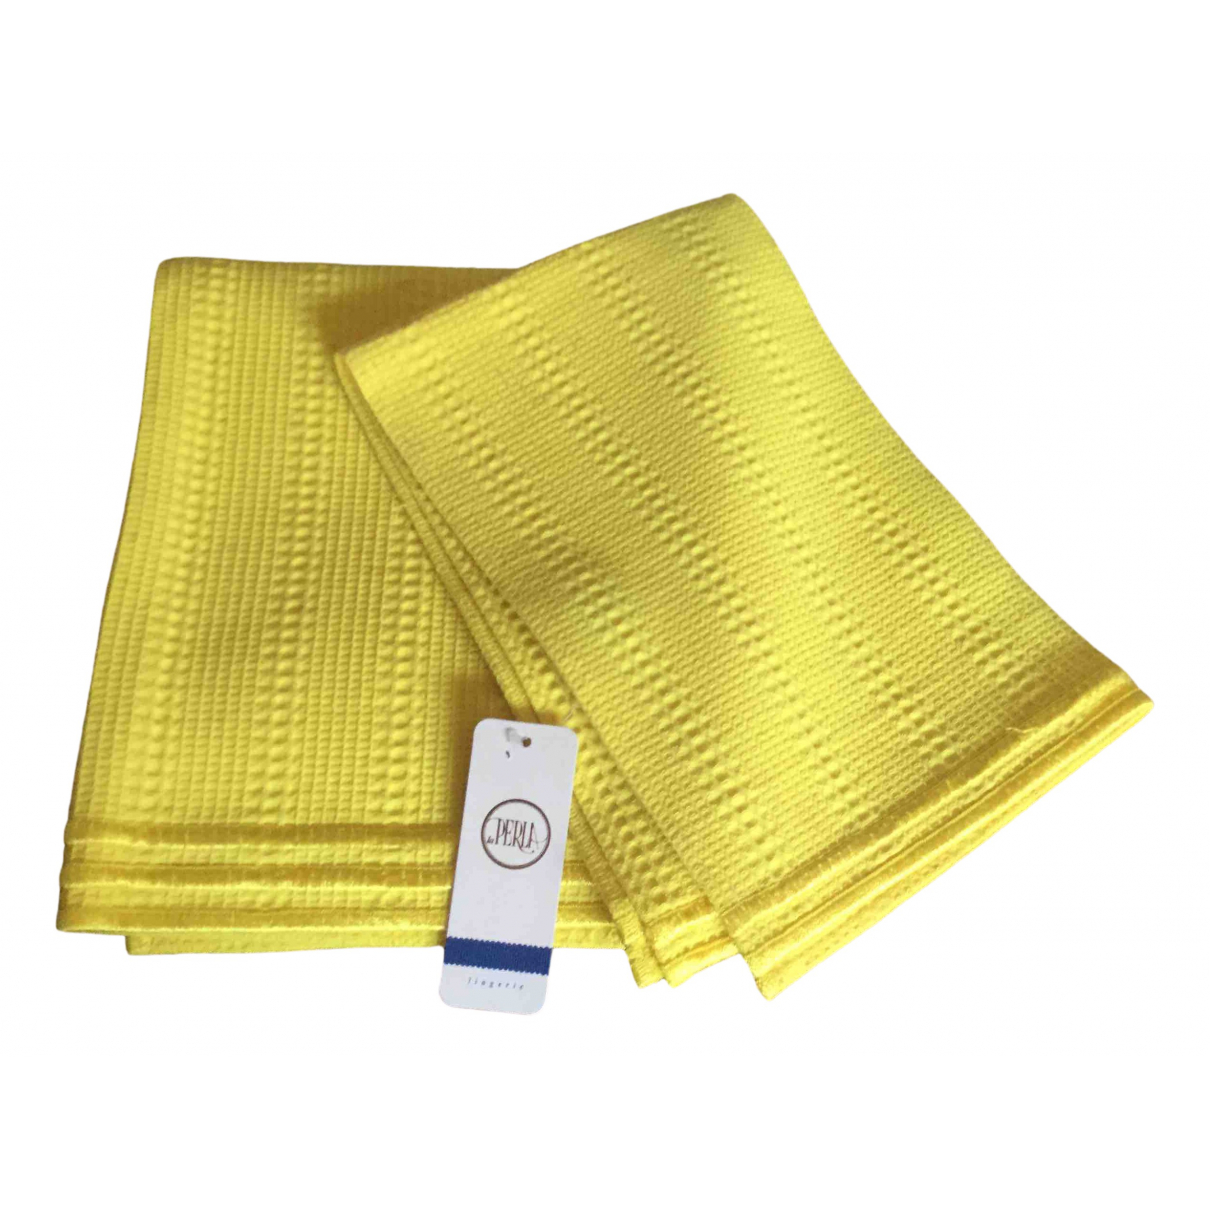 La Perla \N Yellow Cotton Textiles for Life & Living \N